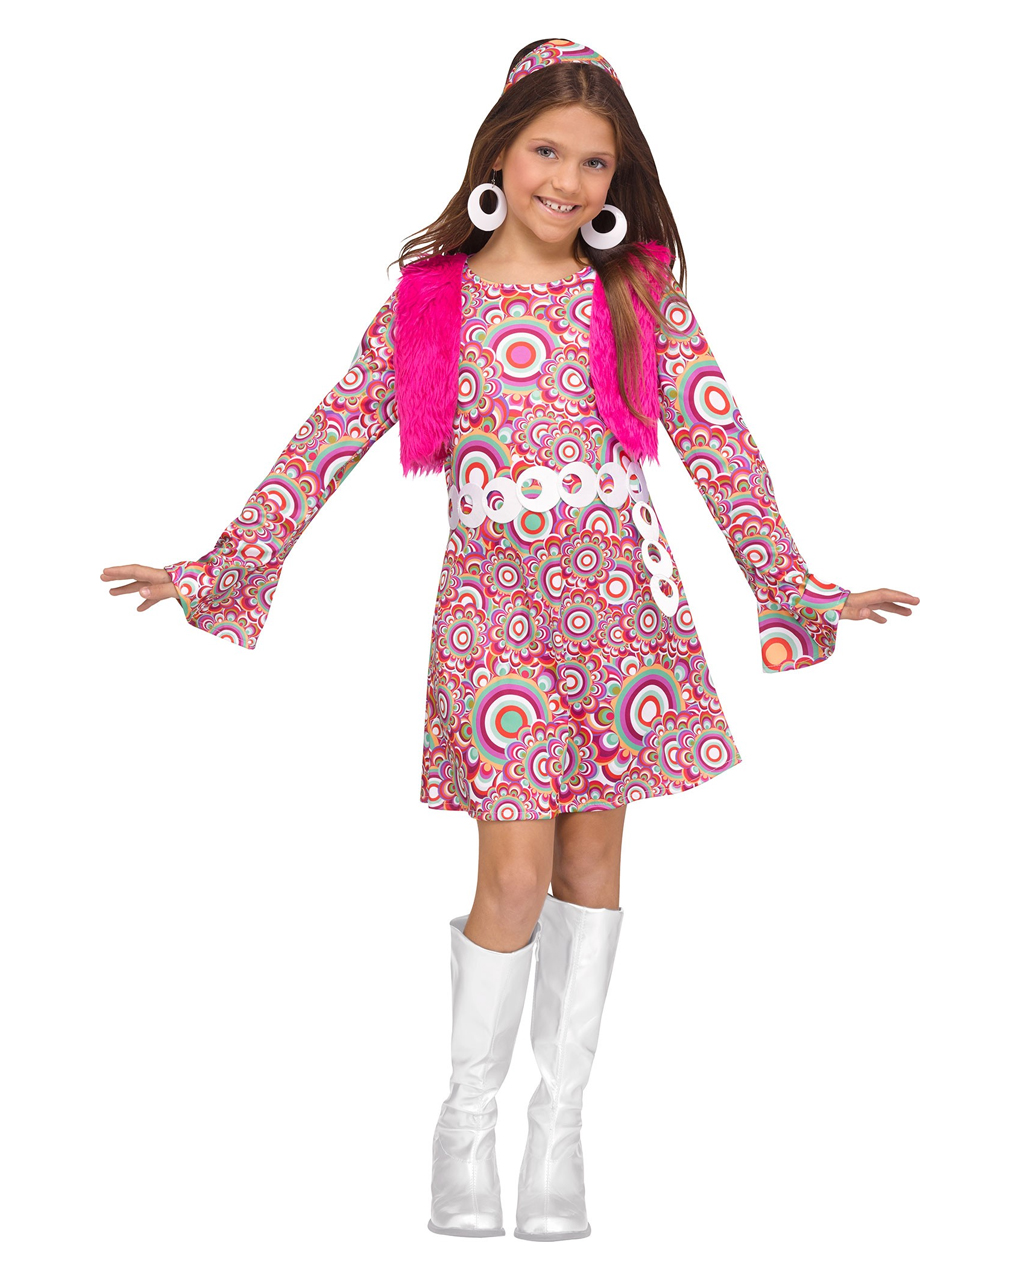 Flower Power Hippie Girl Costume for theme parties  ef0fc379cdf4